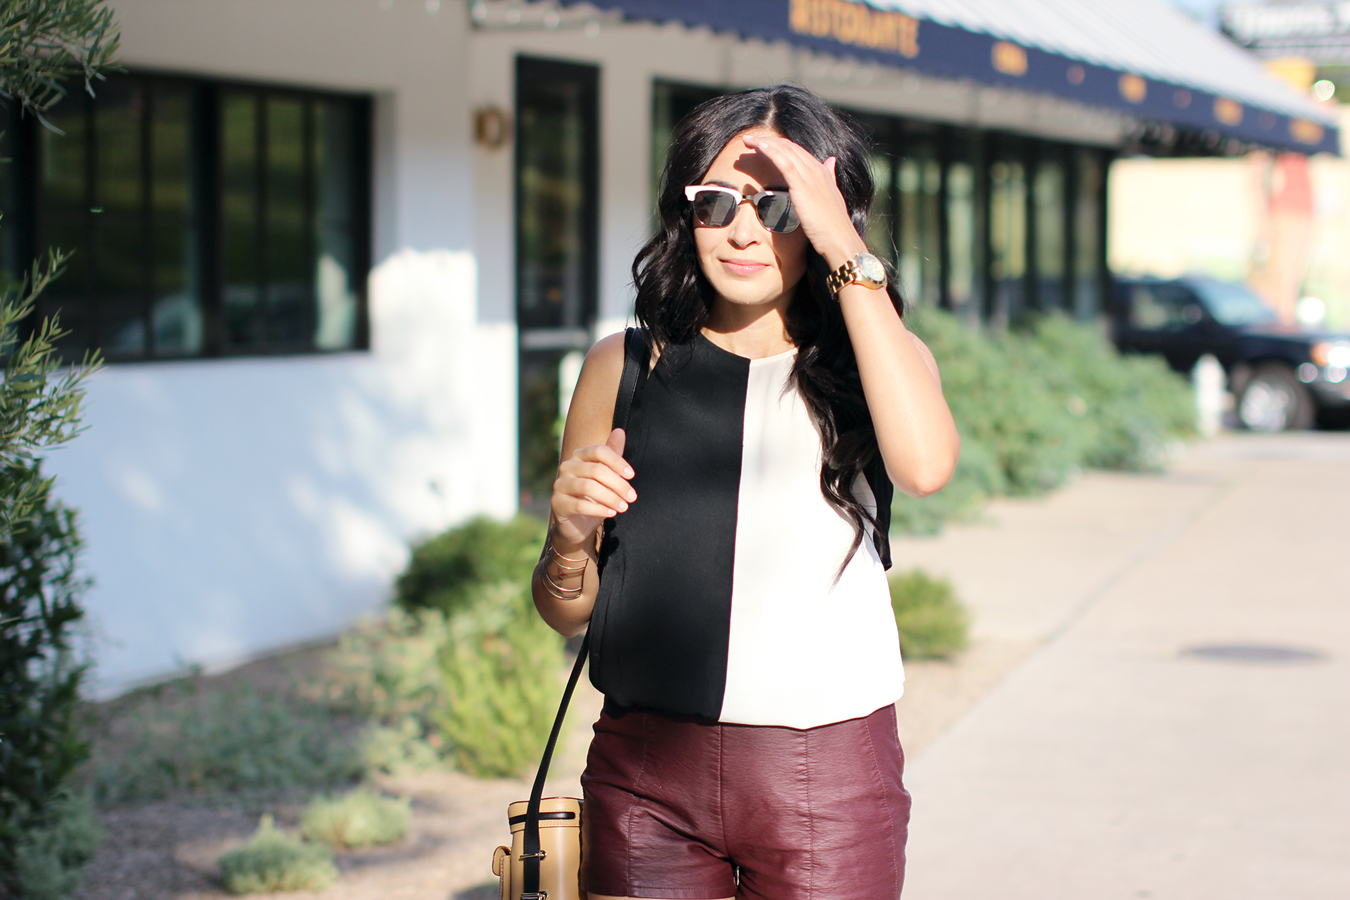 FIXIN-TO-THRILL-COLOR-BLOCK-LEATHER-SHORTS-CURLING-WAND-BLACK-WHITE-FALL-ATX-AUSTIN-STYLE-BLOG-SHIRTS-COLORS-TRENDS-FW15-TRENDY-CHIC-GLAM-FASHION-TEXAS-9